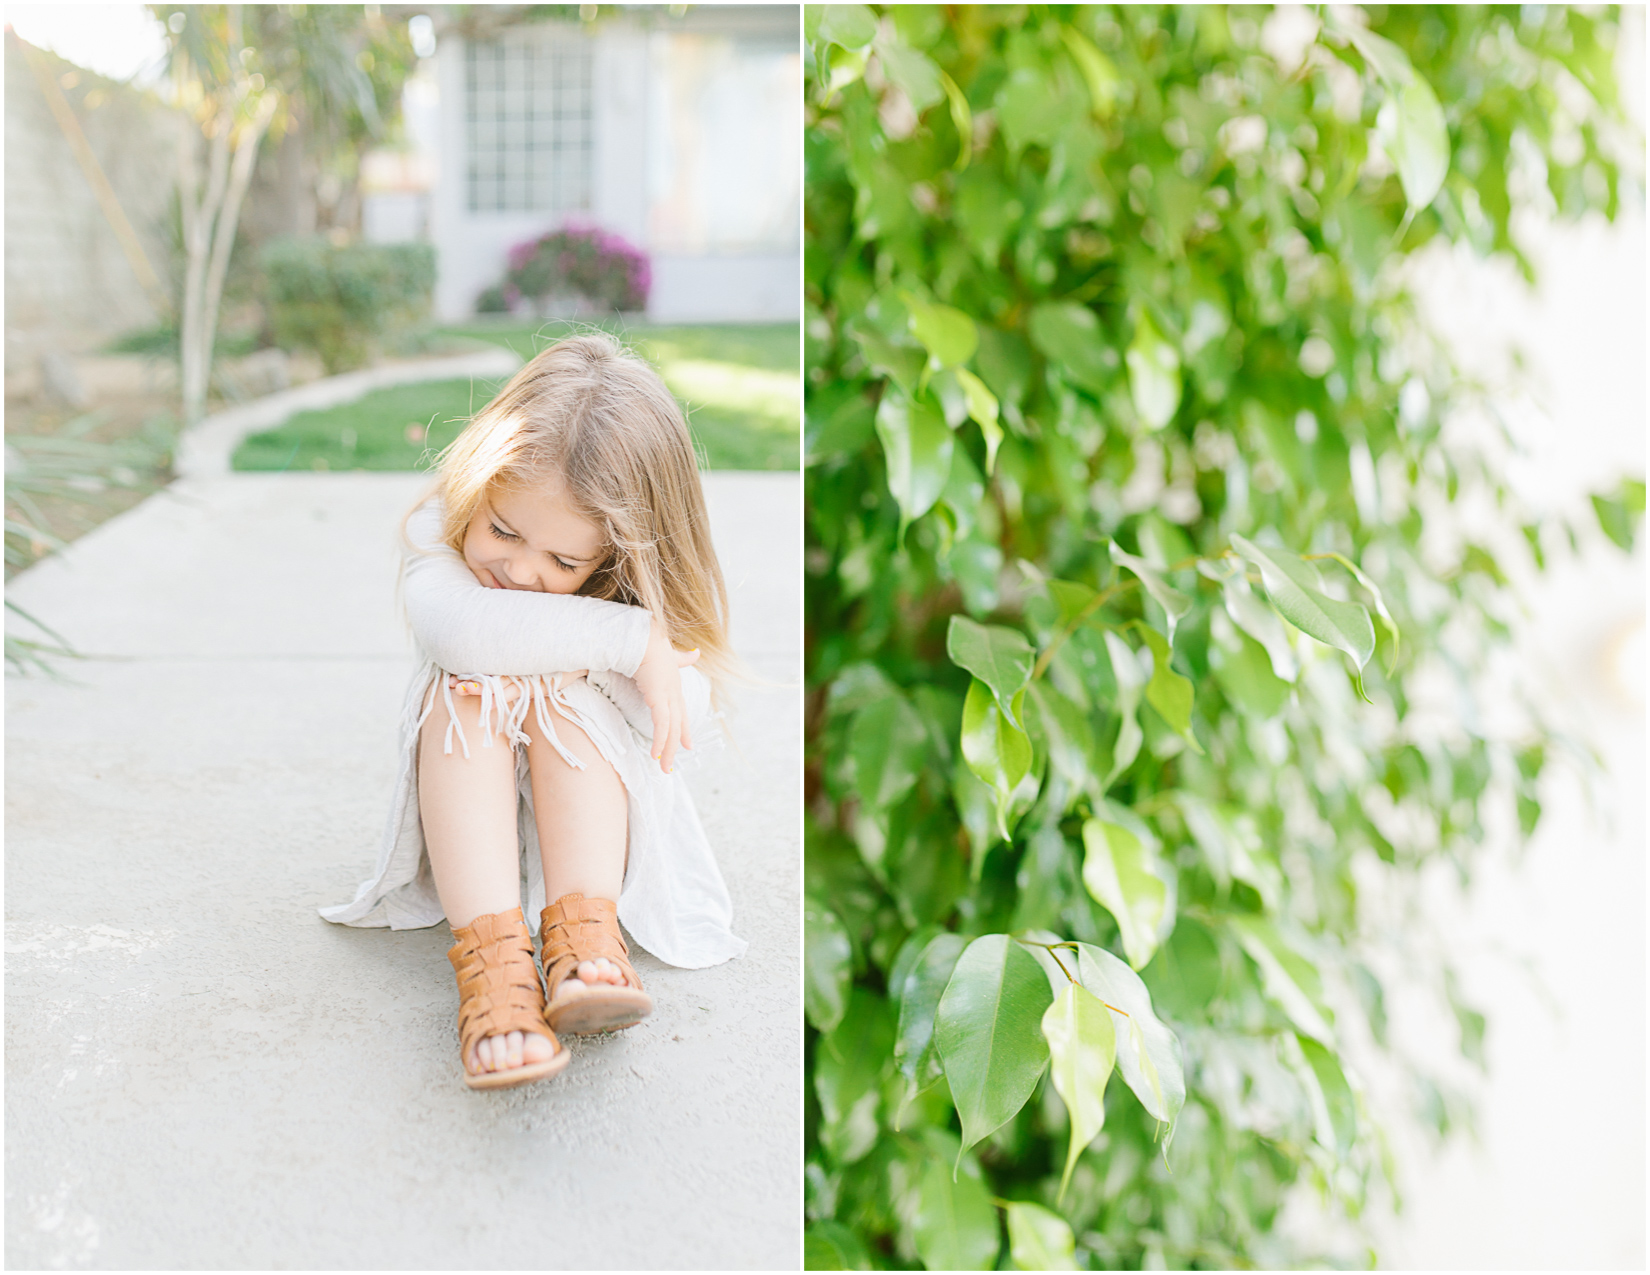 Emma Rose Company   Personal Blog   Adorable Toddler in Sunny California